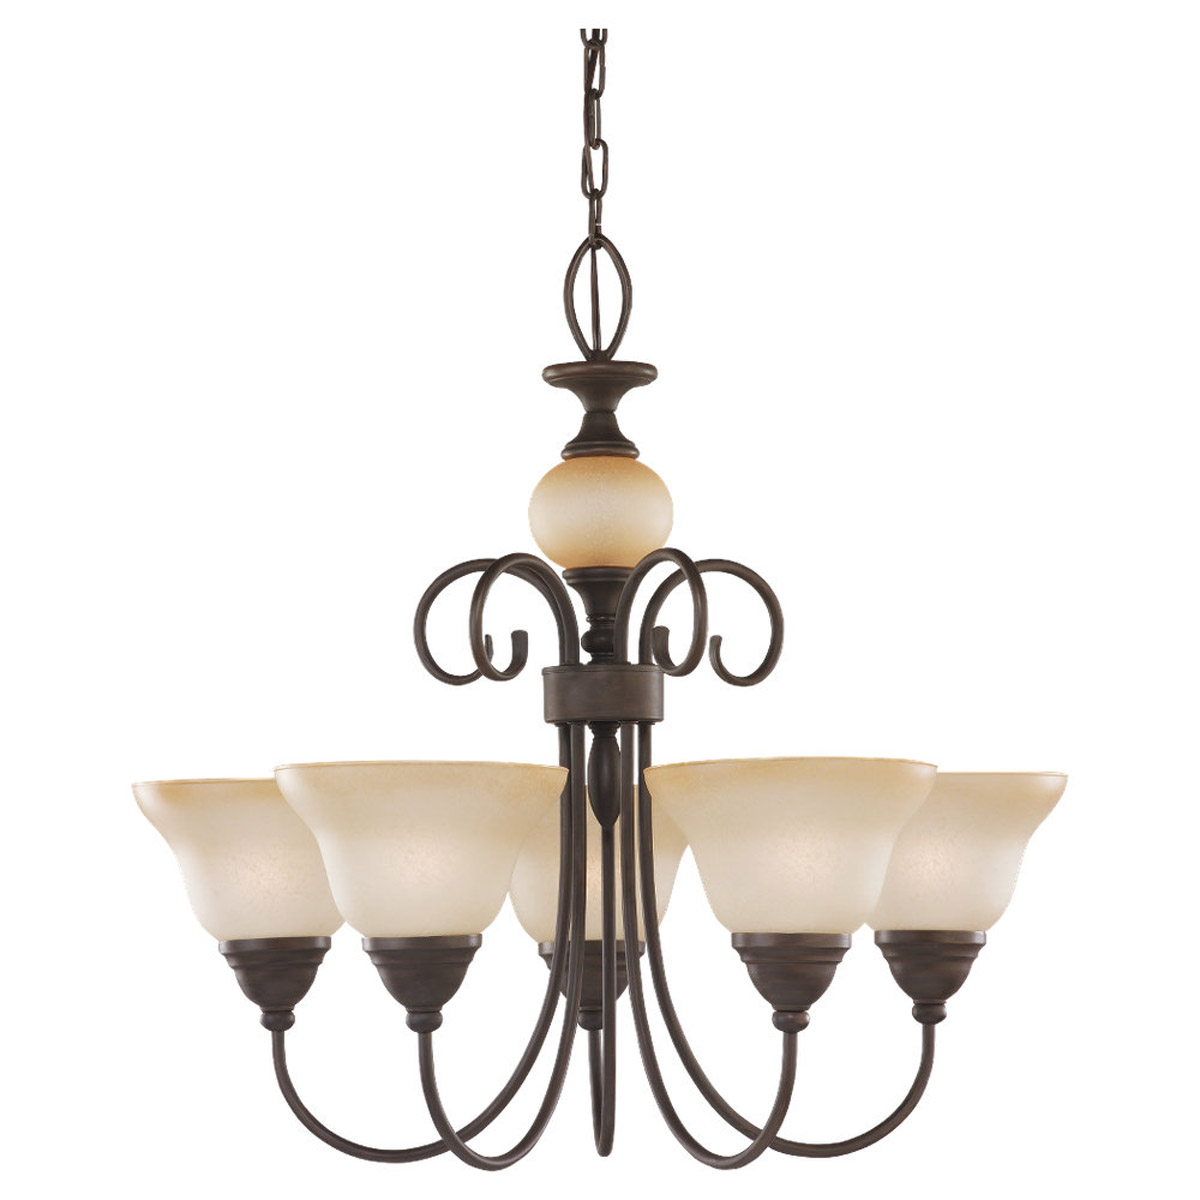 Sea Gull Lighting Montclaire 5 Light Chandelier in Olde Iron 31106-72